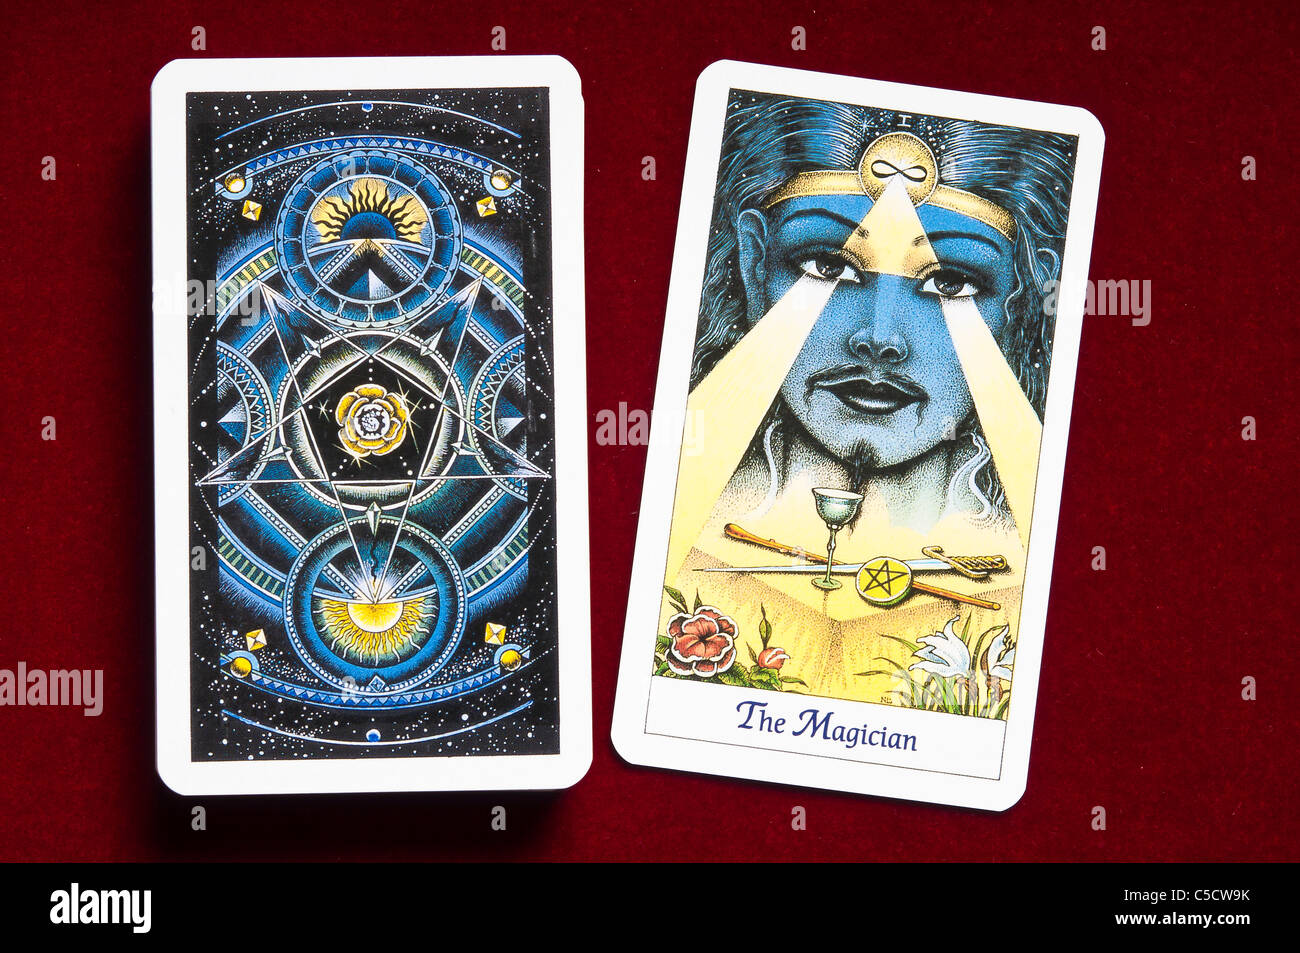 Magician Tarot Stock Photos & Magician Tarot Stock Images - Alamy